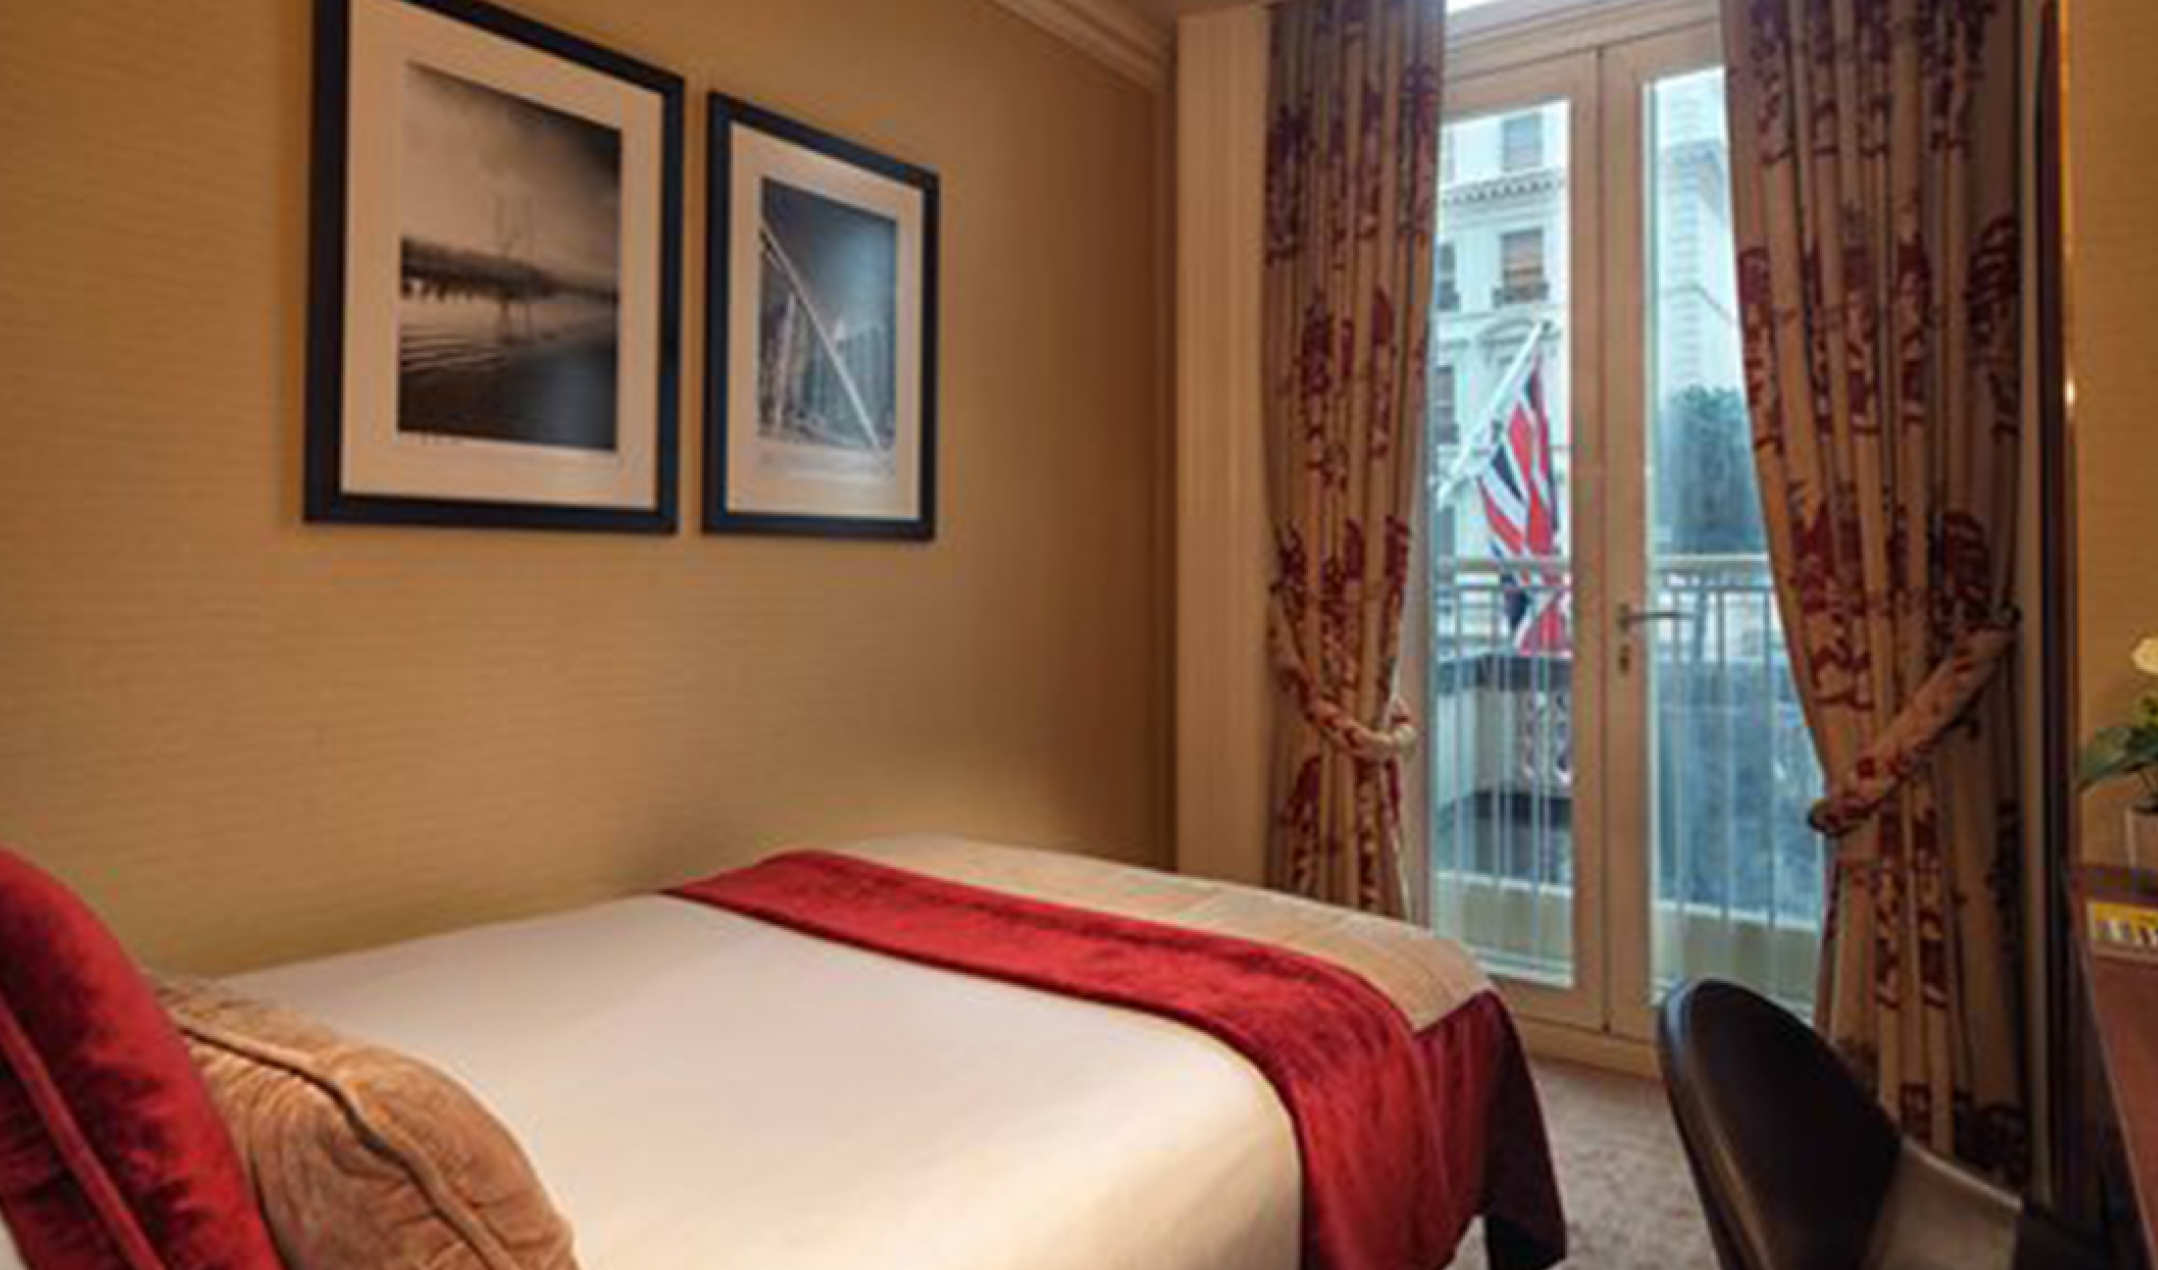 Superior Single bedroom at the Radisson Blu Edwardian Vanderbilt Hotel in London